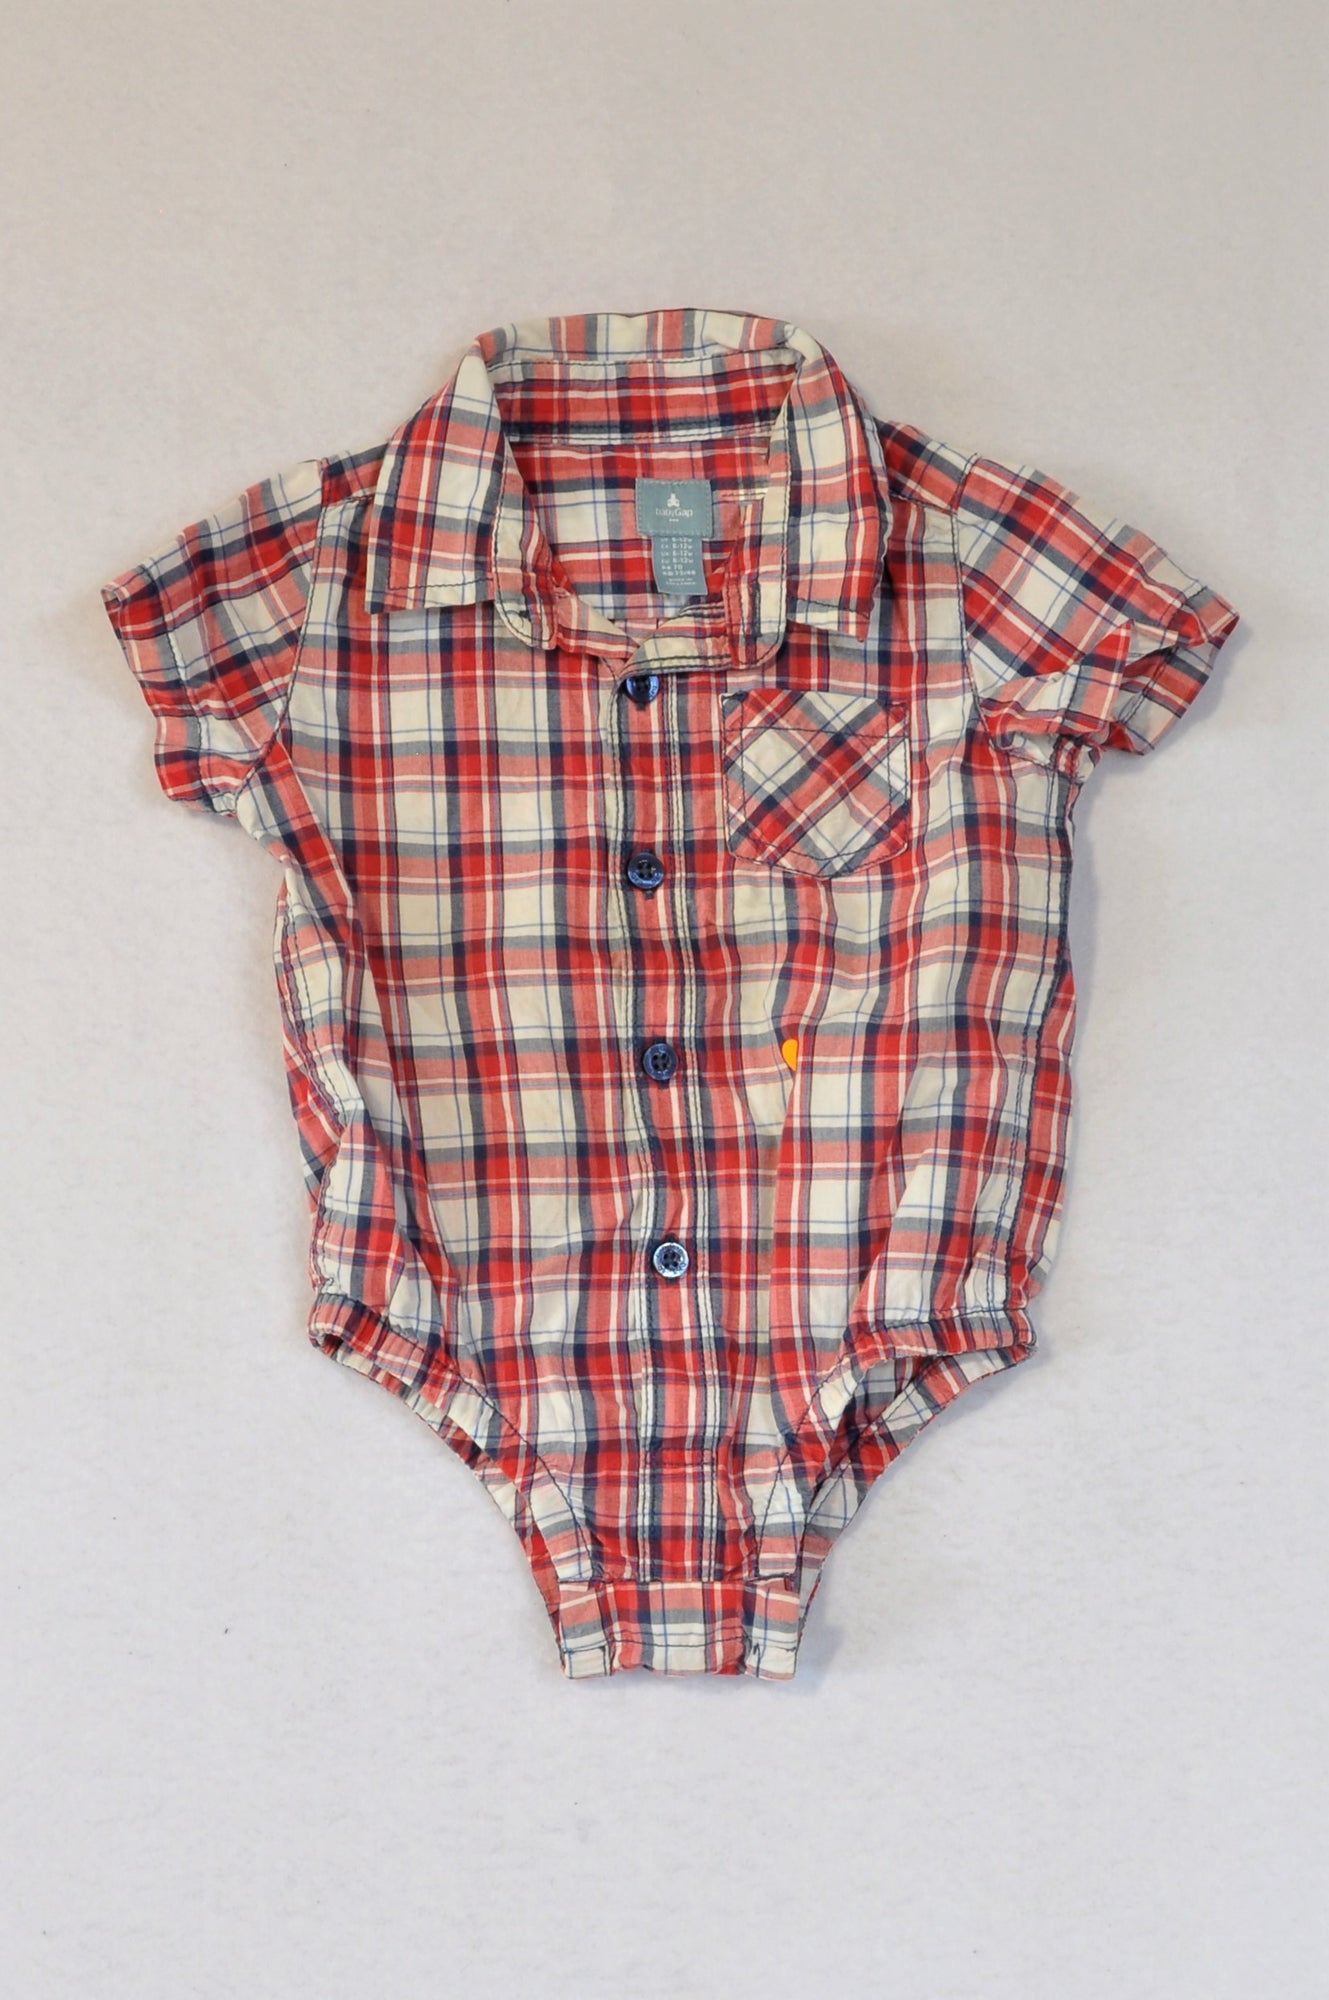 GAP Red & Blue Plaid Shirt Baby Grow Boys 6-12 months